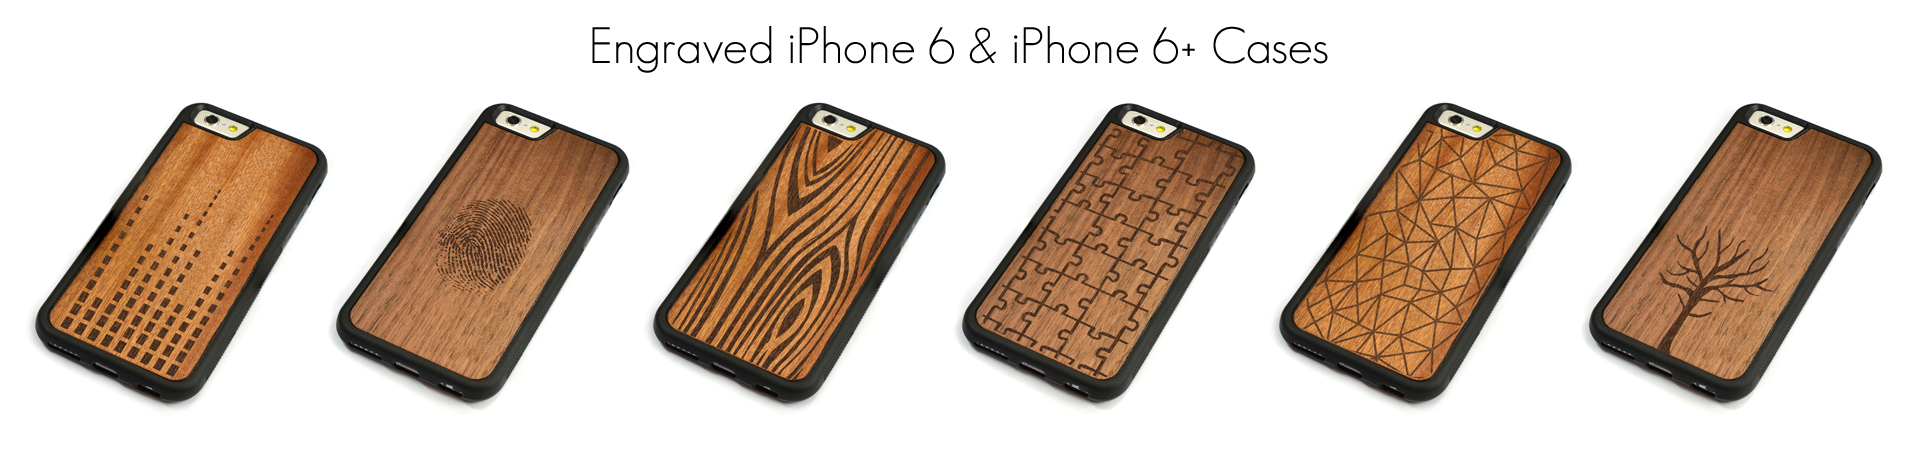 Engraved Wood iPhone 6 Cases